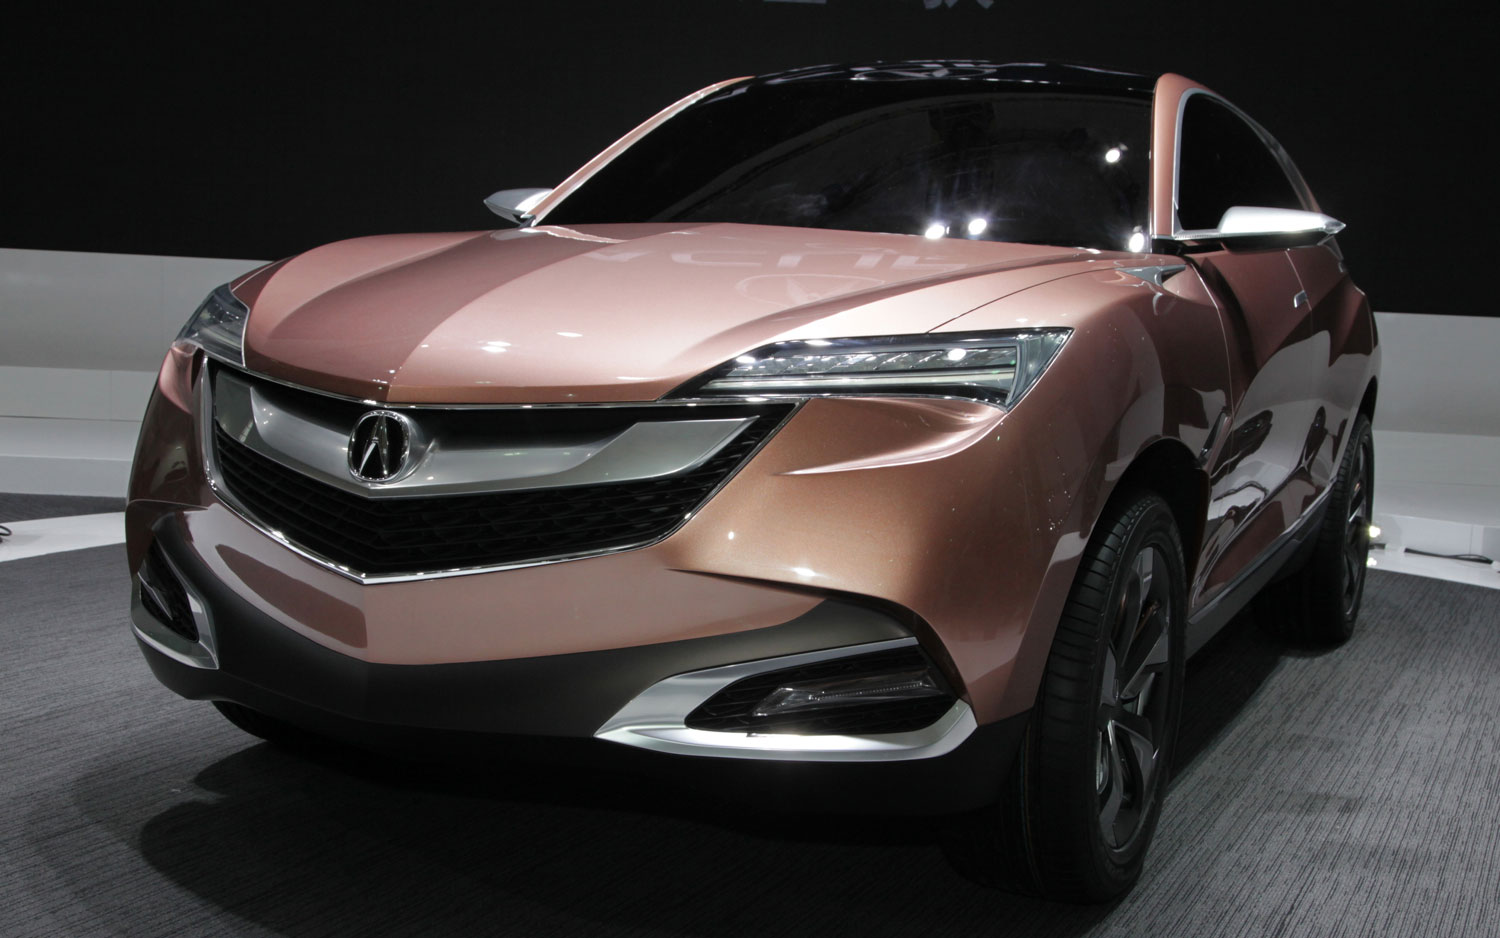 2019 Acura SUV X Concept photo - 6